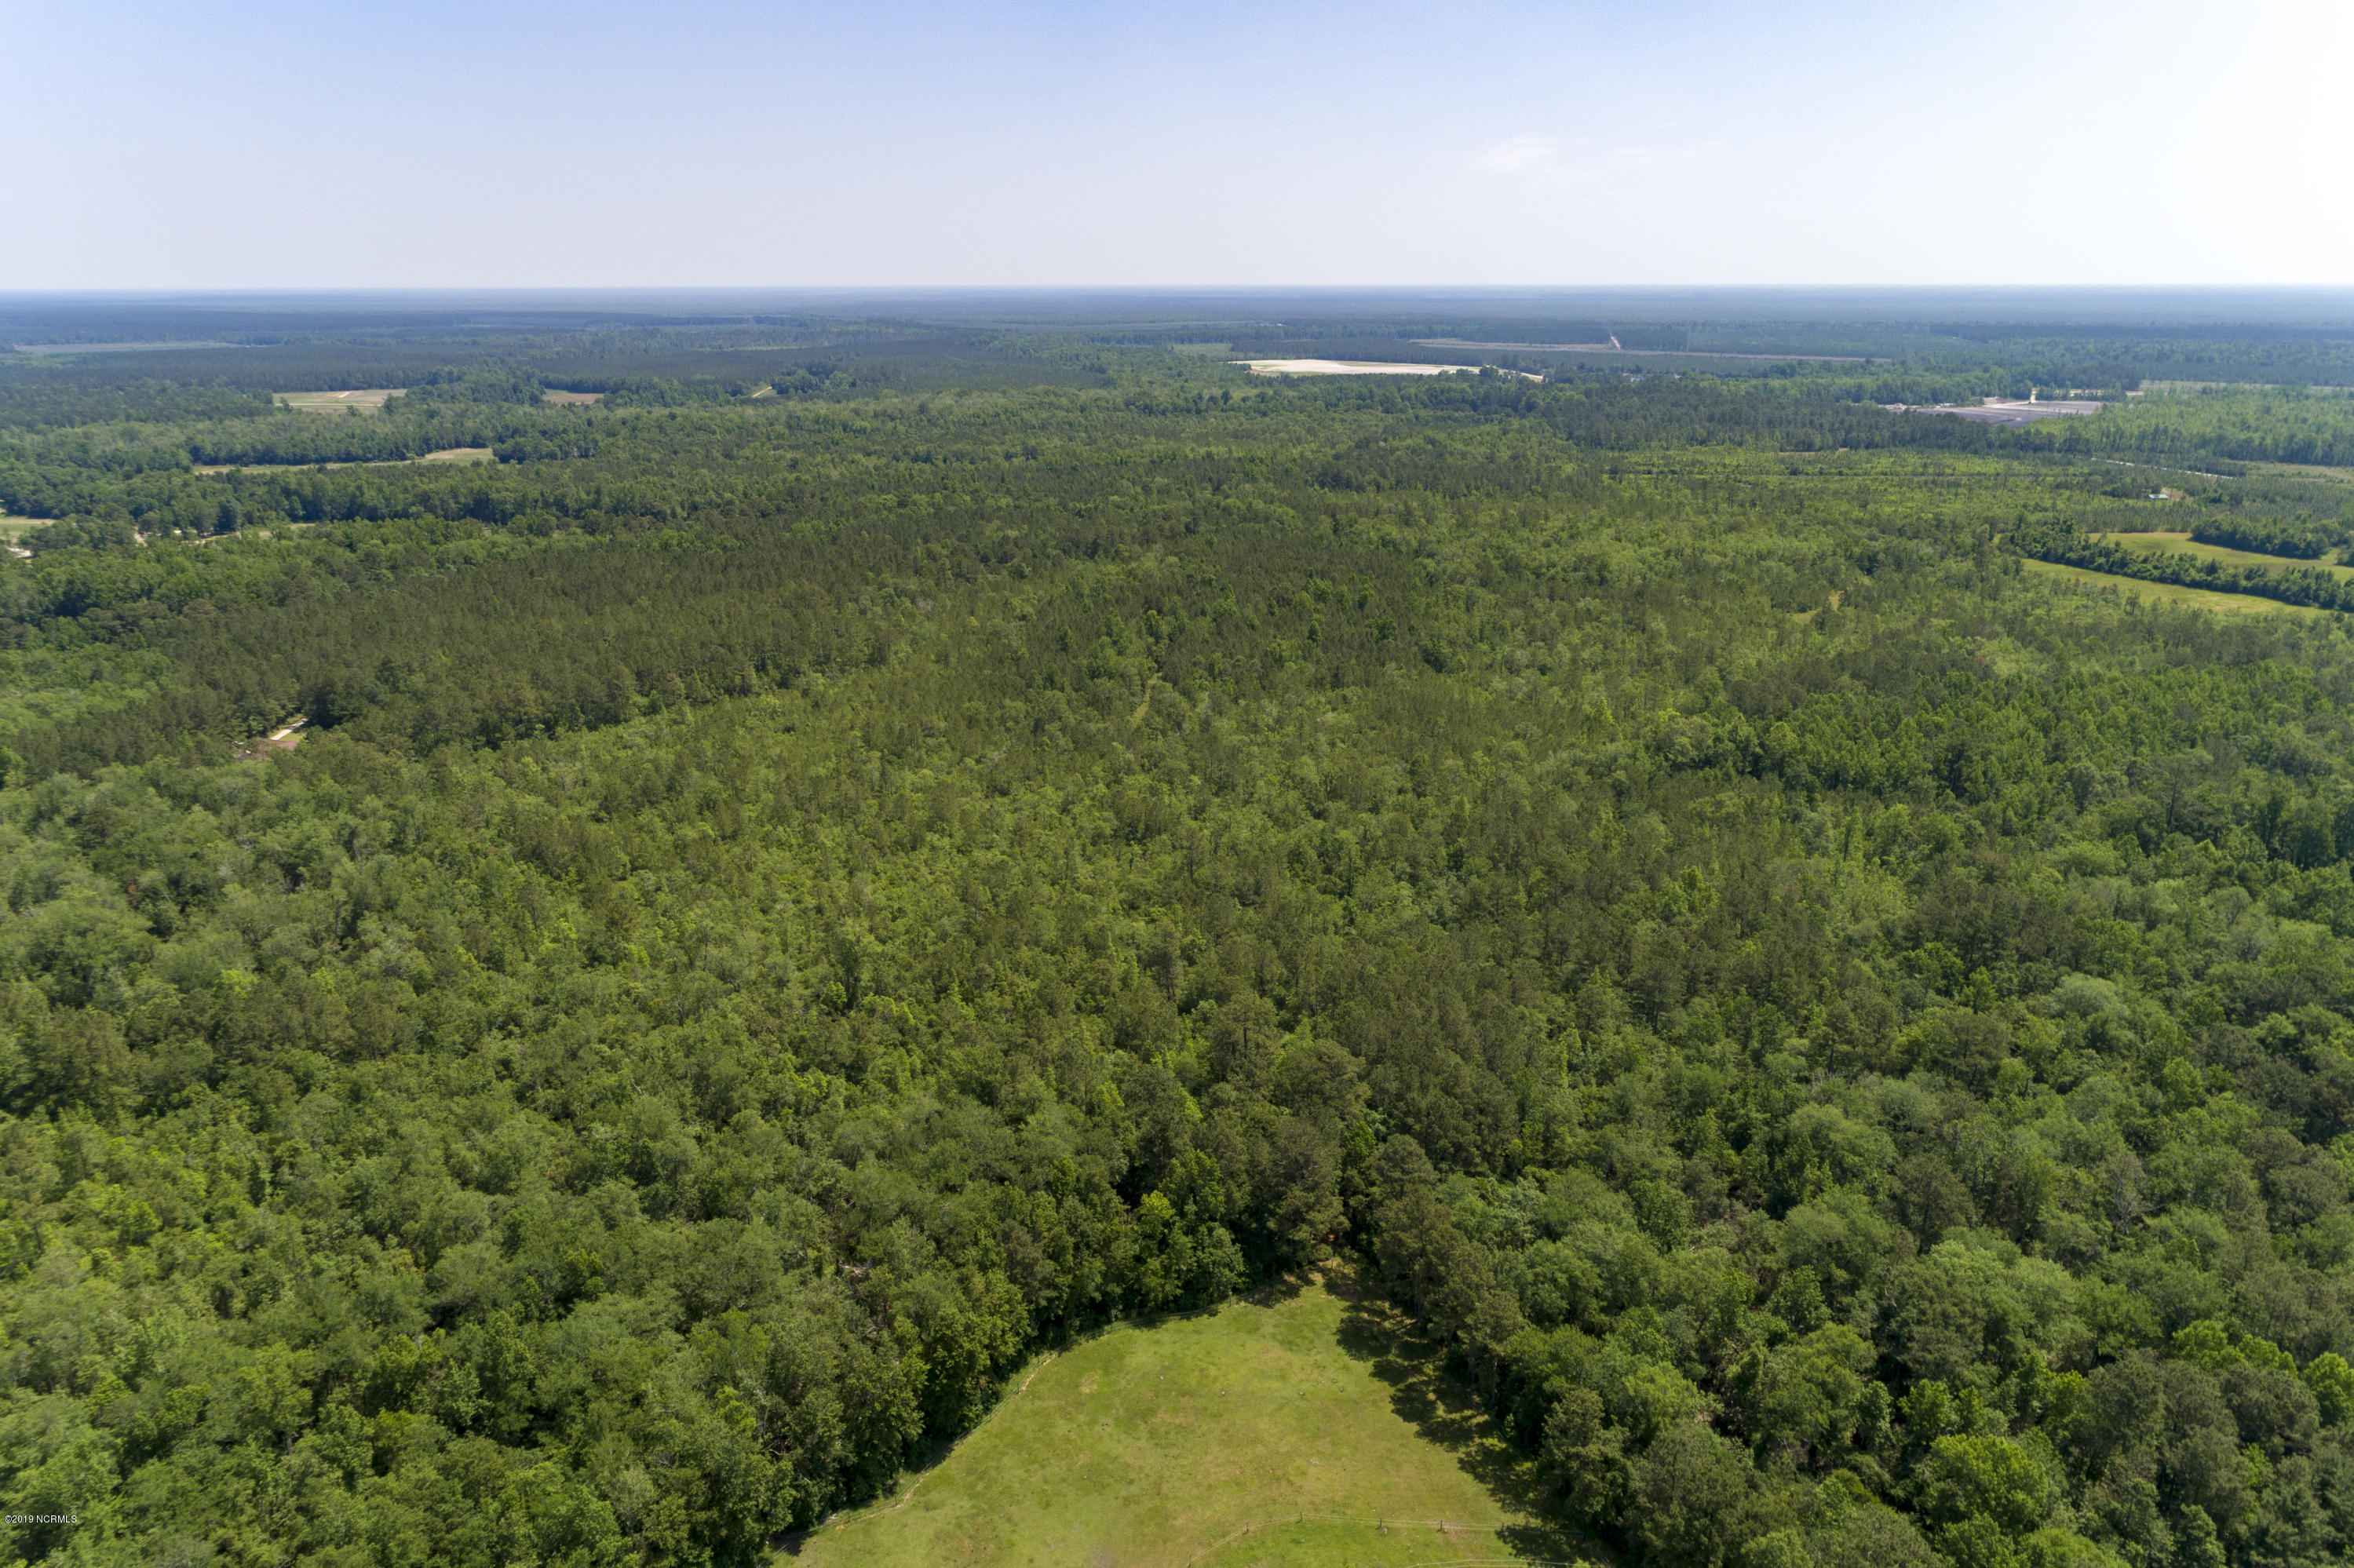 Tbd Cow Horn Road, Richlands, North Carolina 28574, ,Undeveloped,For sale,Cow Horn,100165868